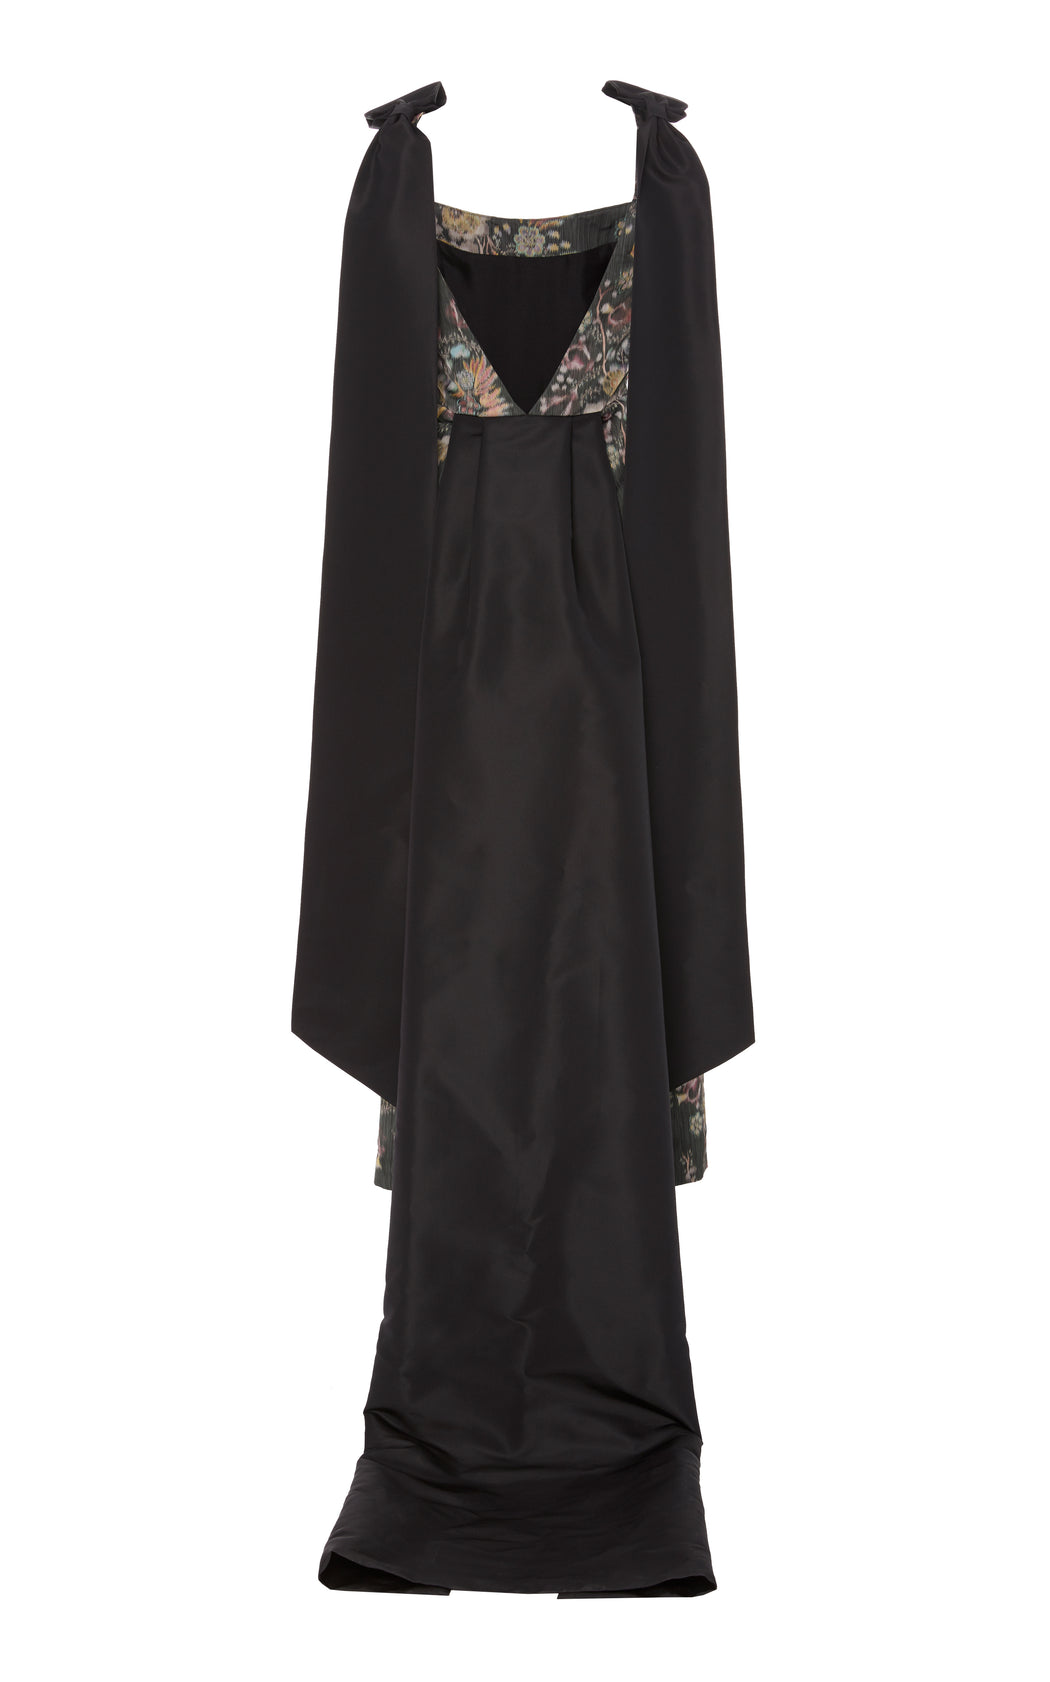 In Stock: Celestia Black Floral Brocade Dress with Taffeta Details